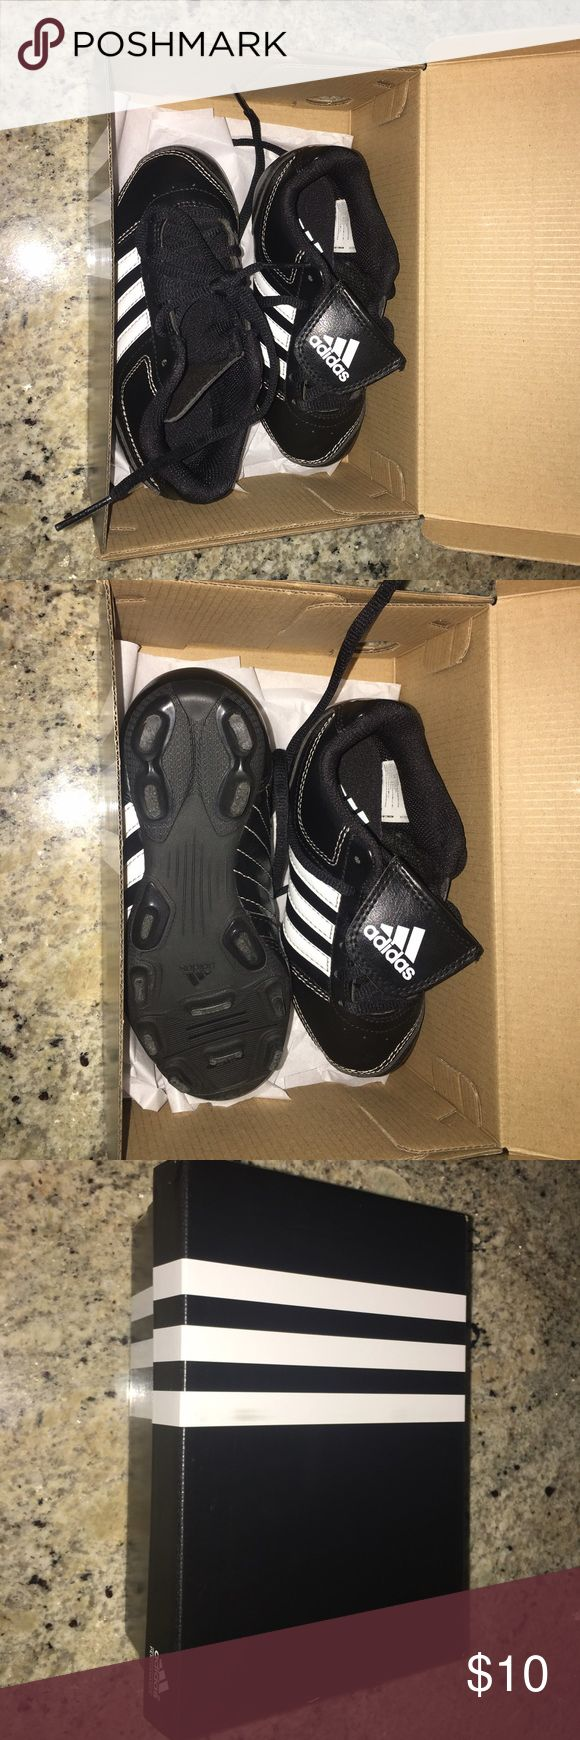 Adidas Baseball ⚾️ shoes They were worn only 5 times and for an hour each day. Great deal. Adidas Shoes Sneakers